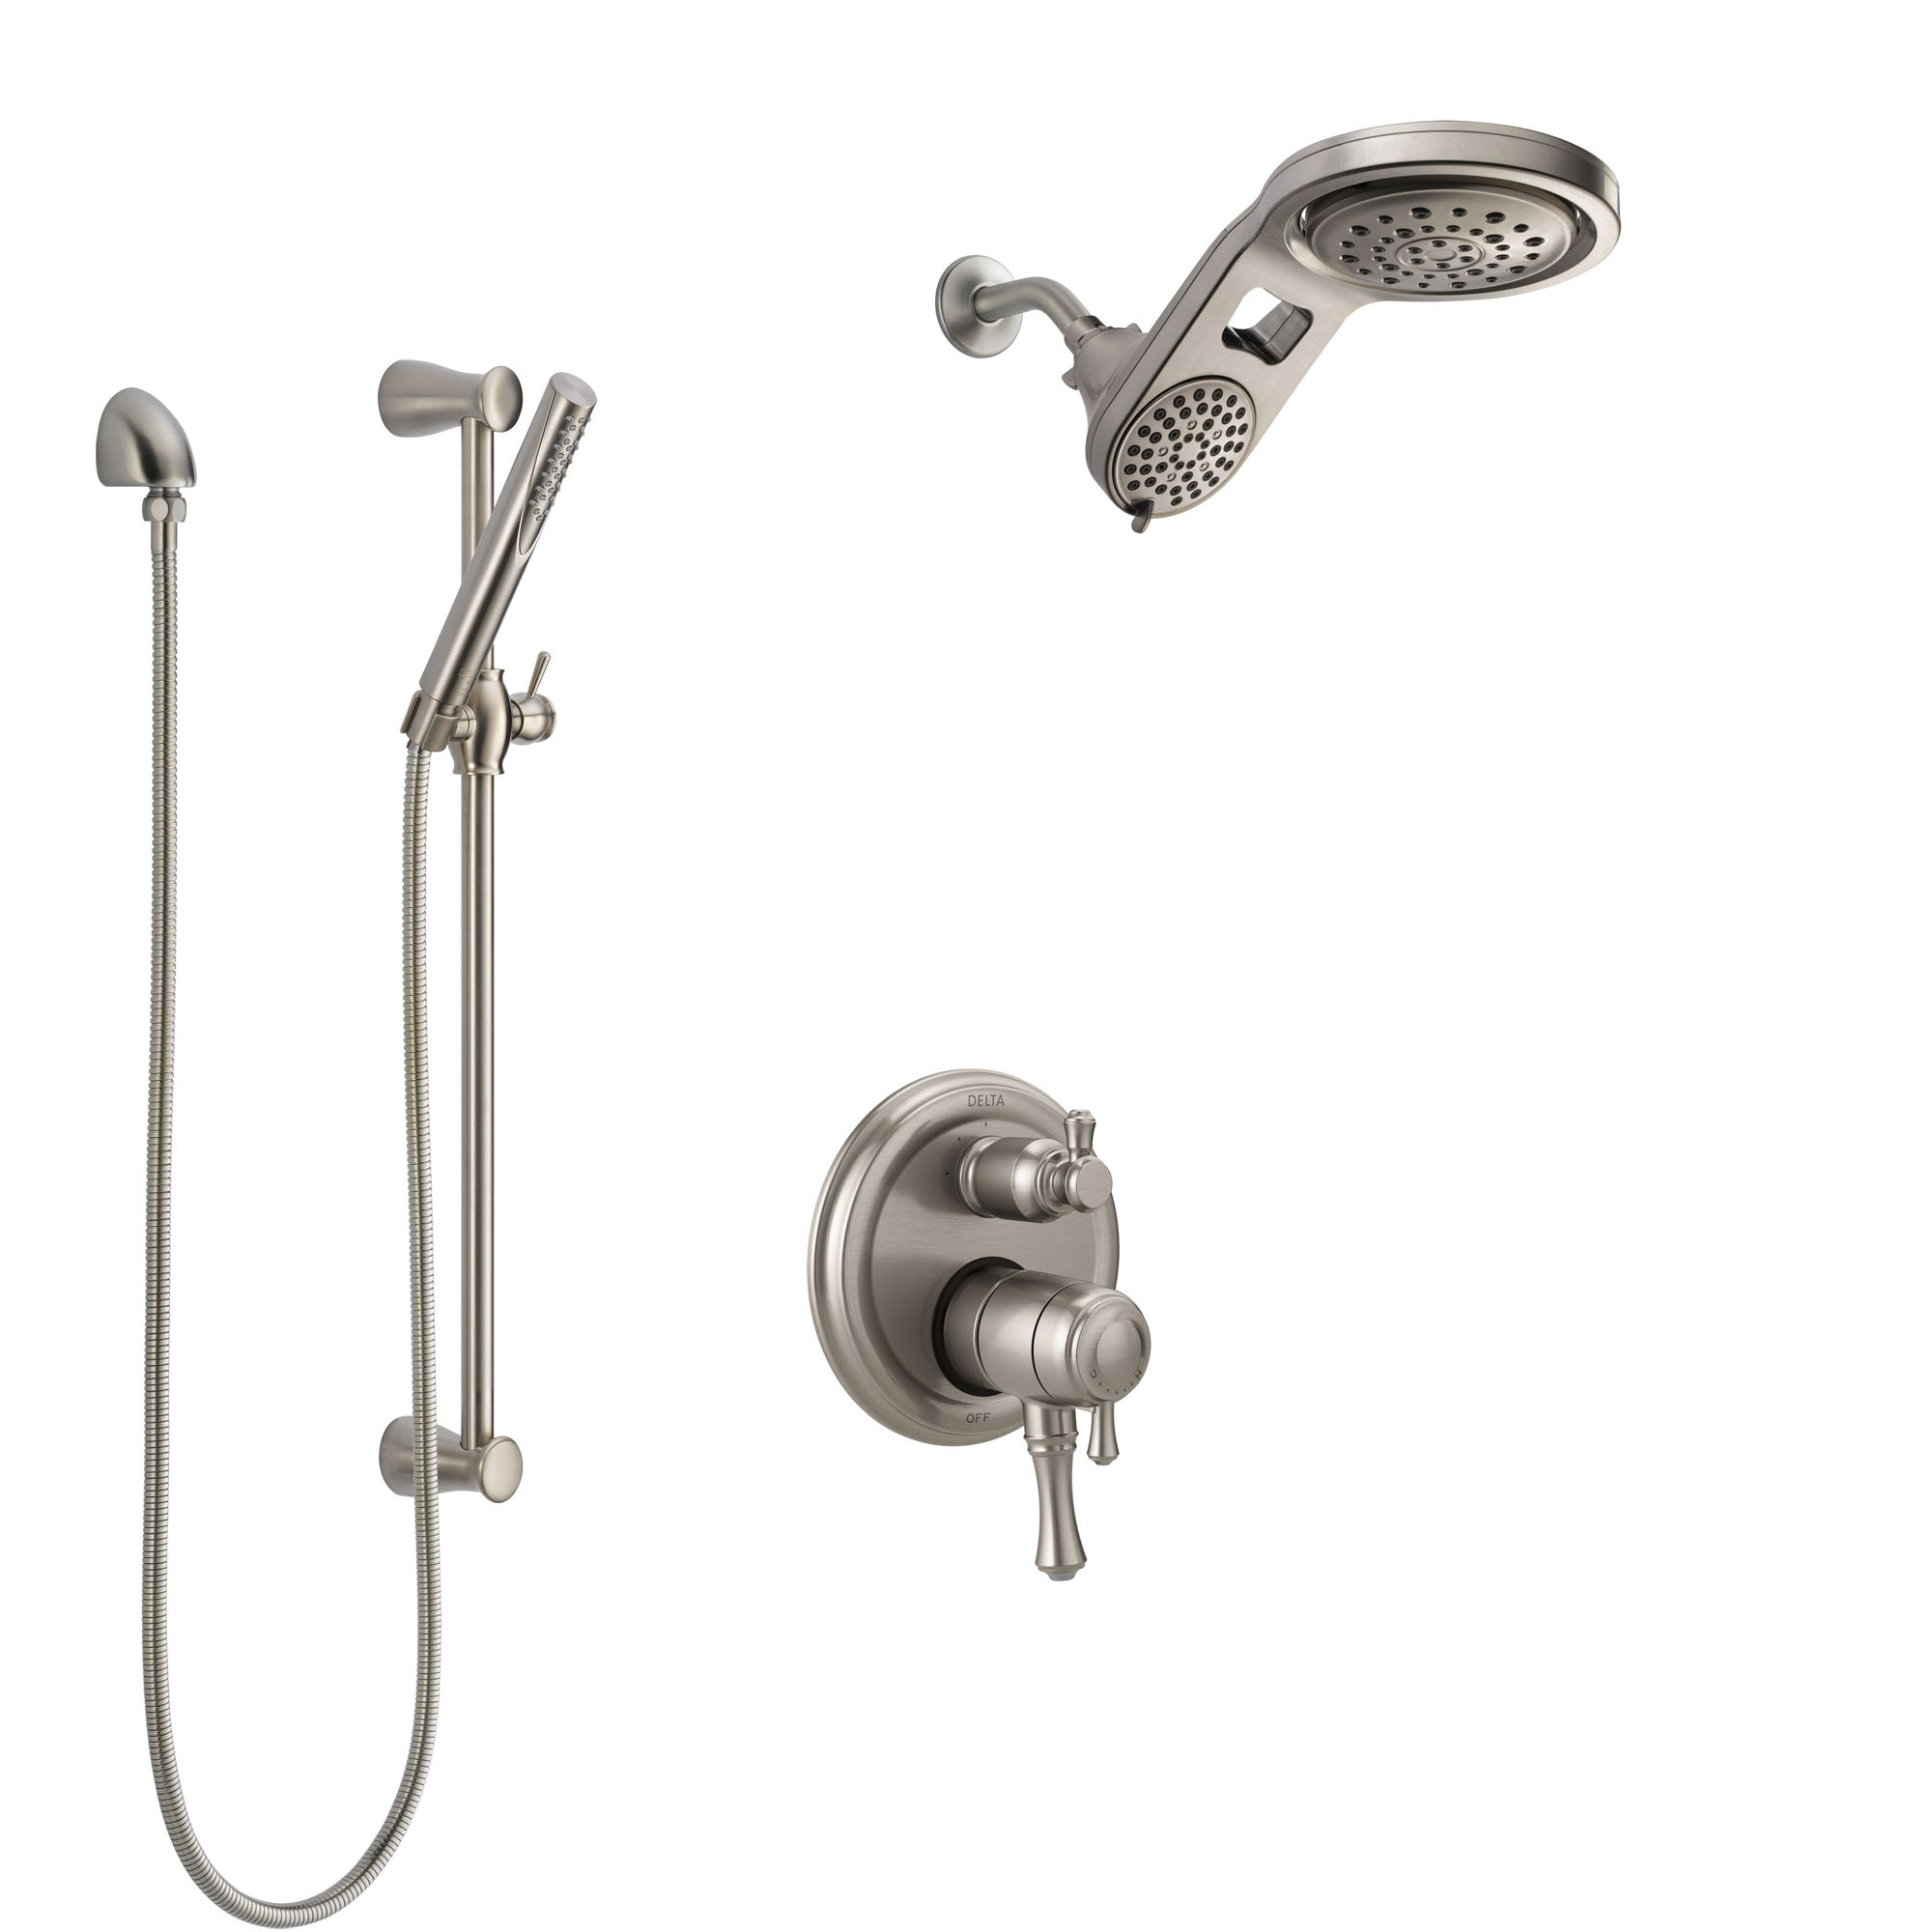 Delta Cassidy Dual Control Handle Stainless Steel Finish Shower System, Integrated Diverter, Dual Showerhead, and Hand Shower with Slidebar SS27897SS6